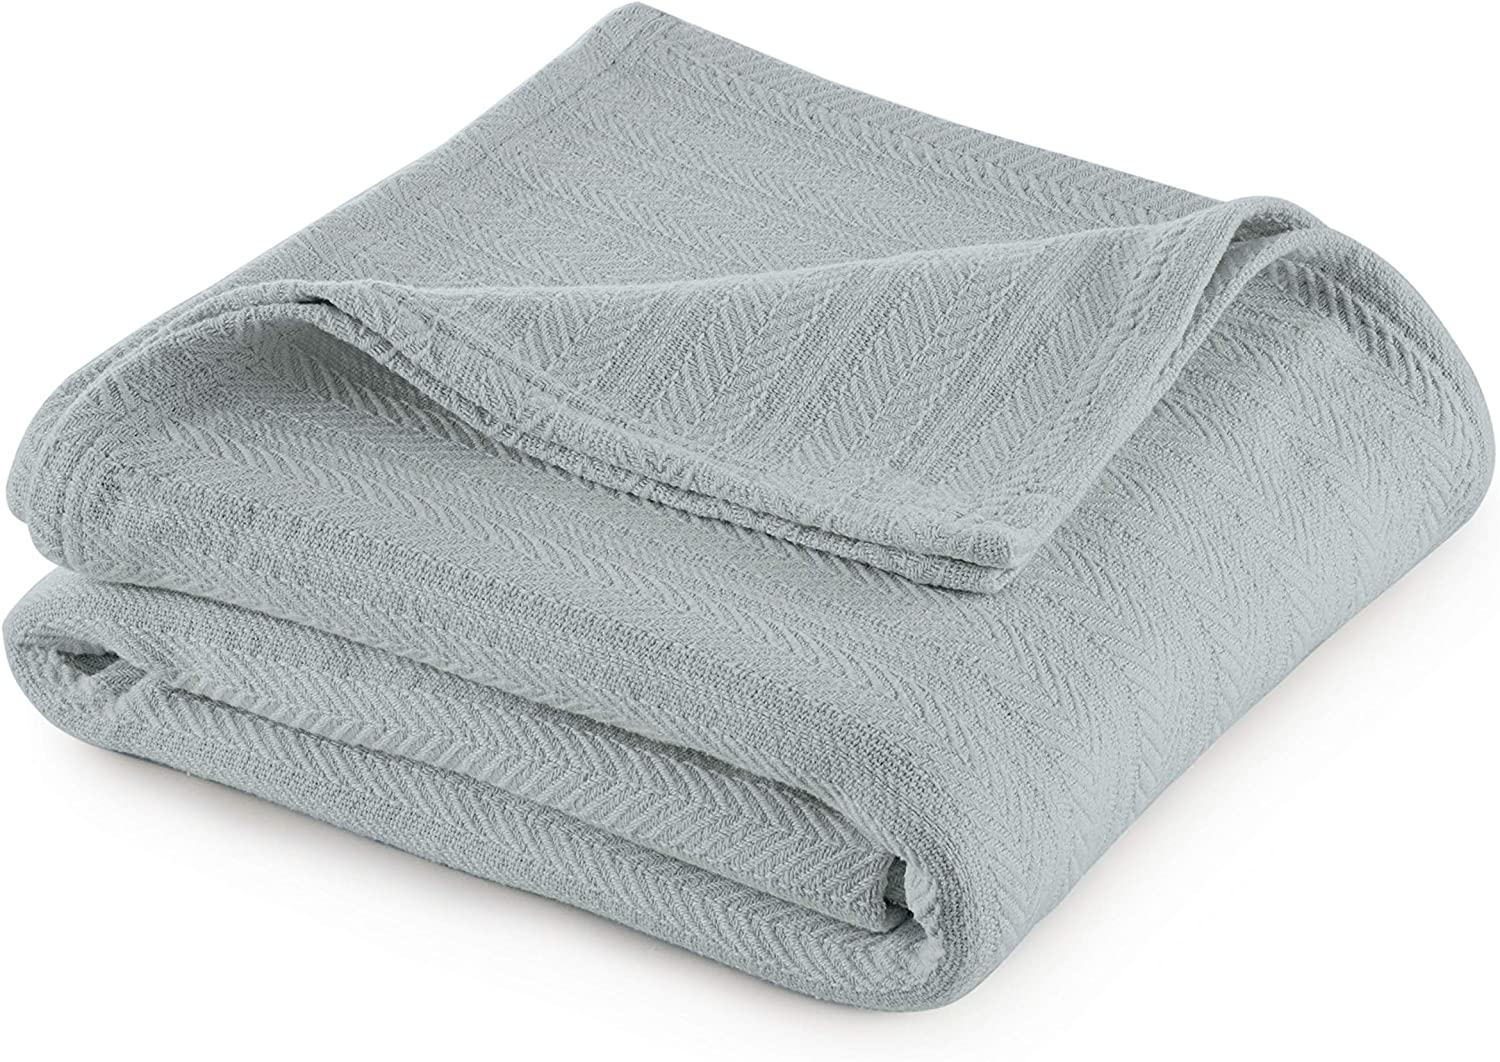 COTTON WOVEN BLANKET BY VELLUX -Natural, Cozy, Warm, Chevron Textured, Pet-Friendly, All-Seasons- Sea Mist